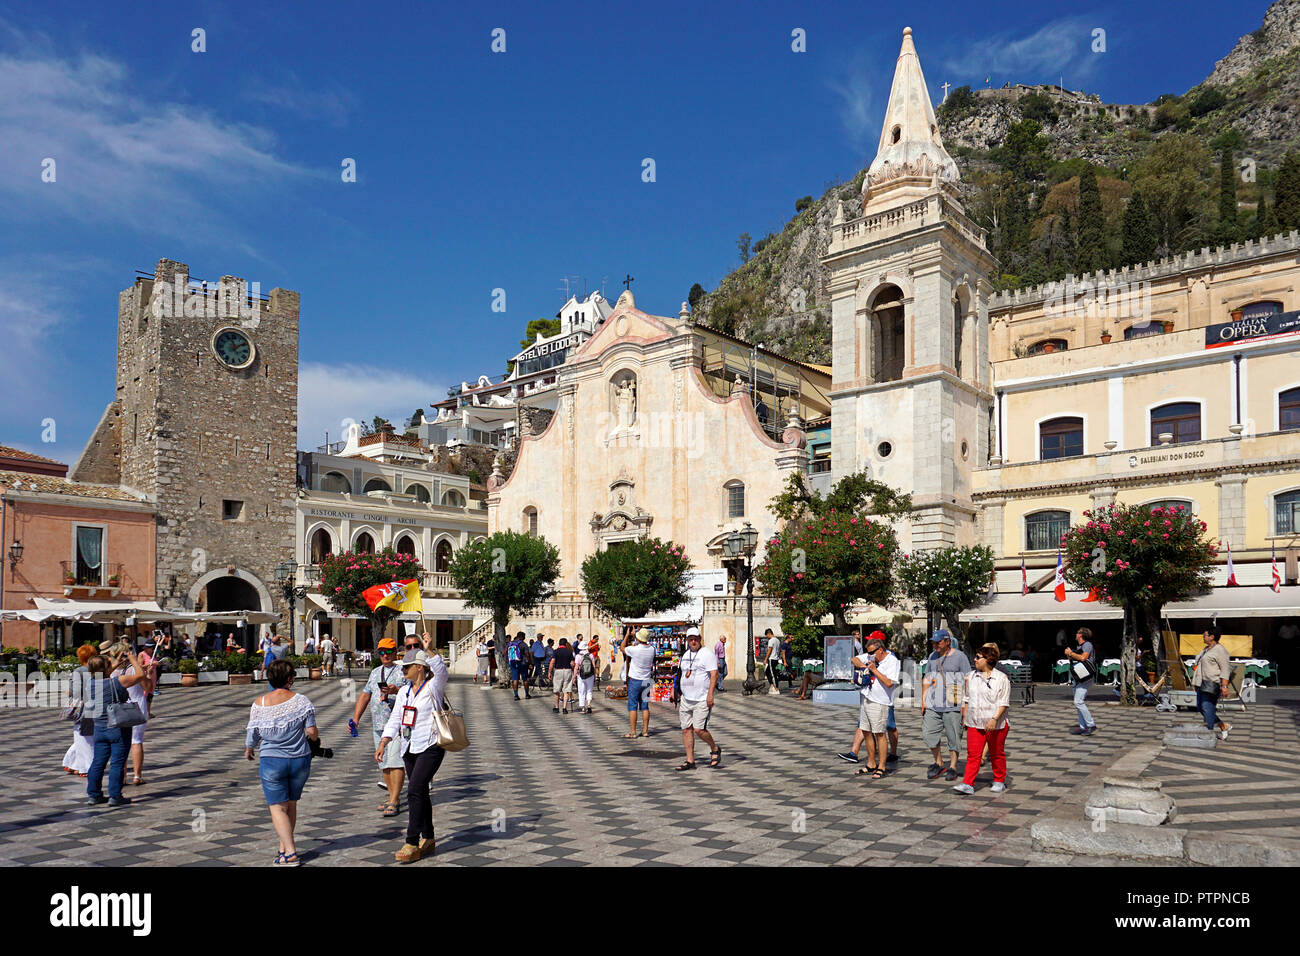 Church of San Giuseppe and clock tower Torre dell'Orolorgio at Piazza IX. Aprile, old town of Taormina, Sicily, Italy Stock Photo